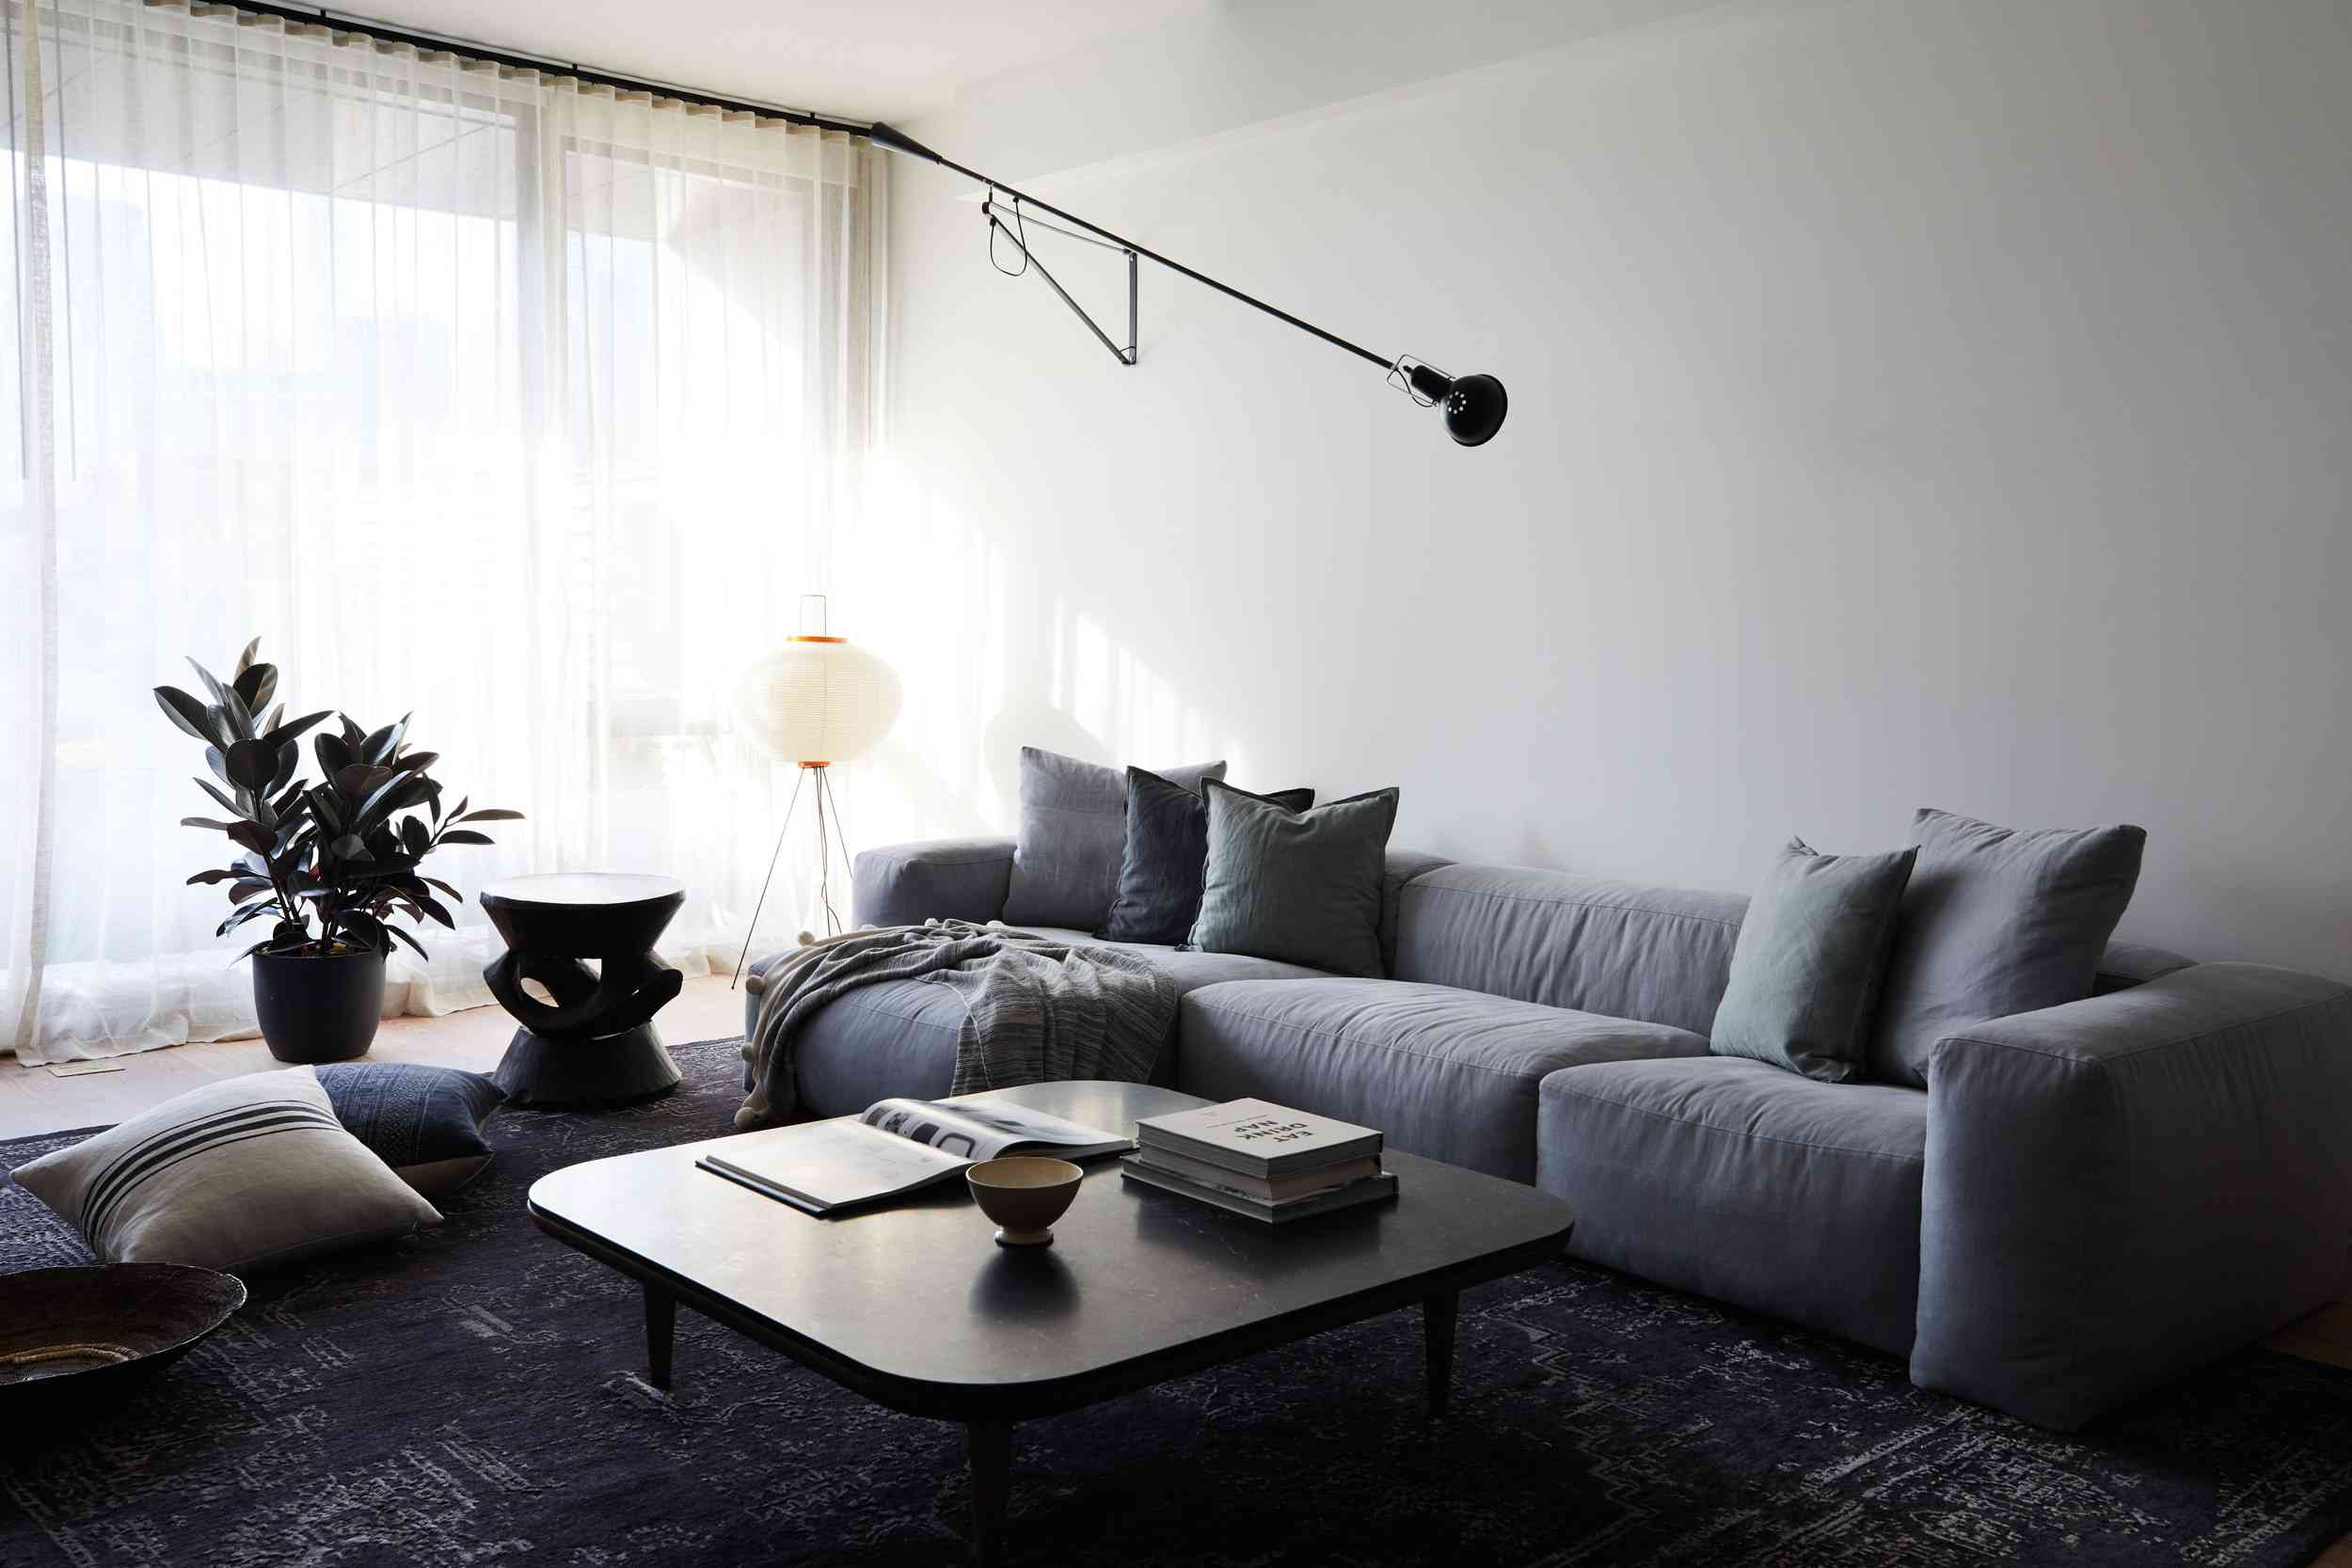 Cushy living room with plush and round furniture